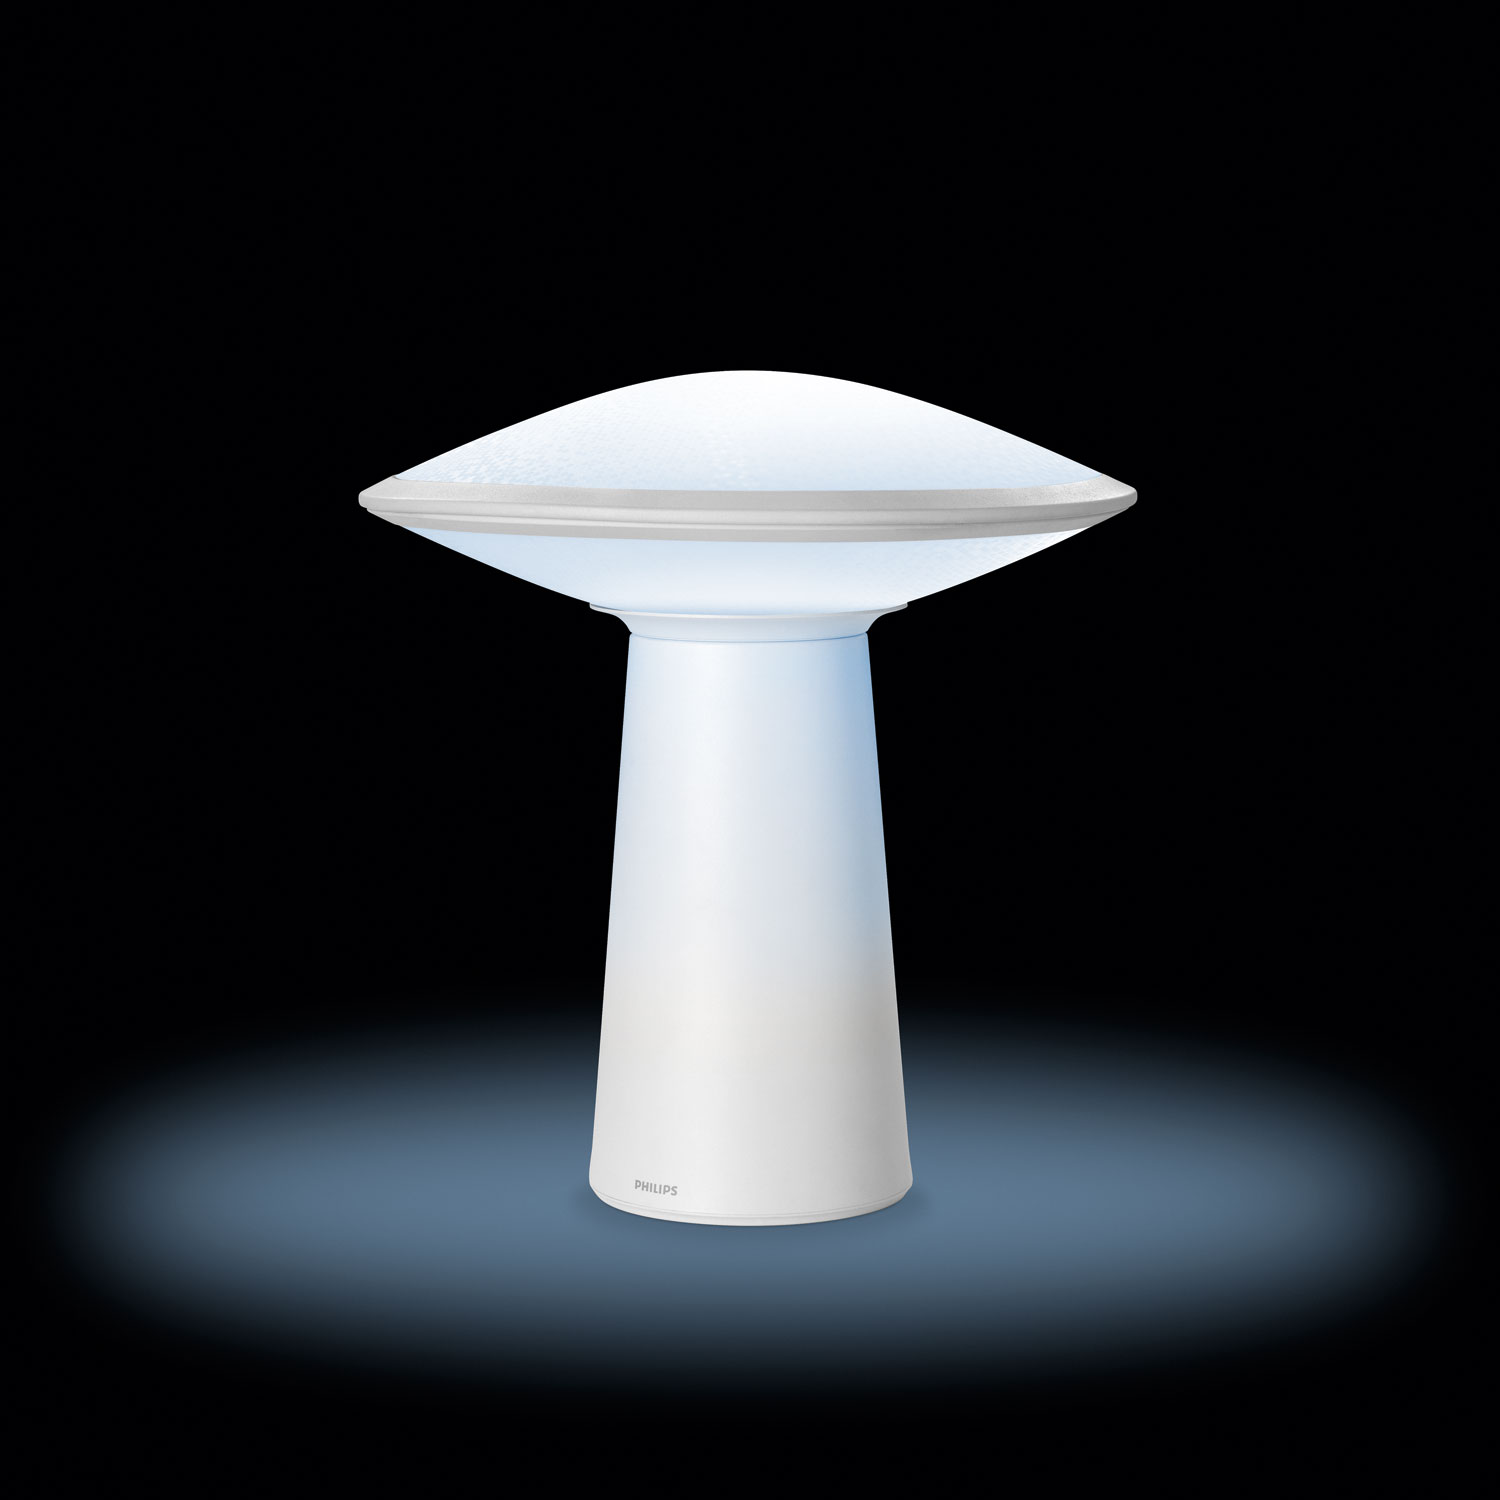 philips hue phoenix lampe de table ampoule connect e philips sur ldlc. Black Bedroom Furniture Sets. Home Design Ideas